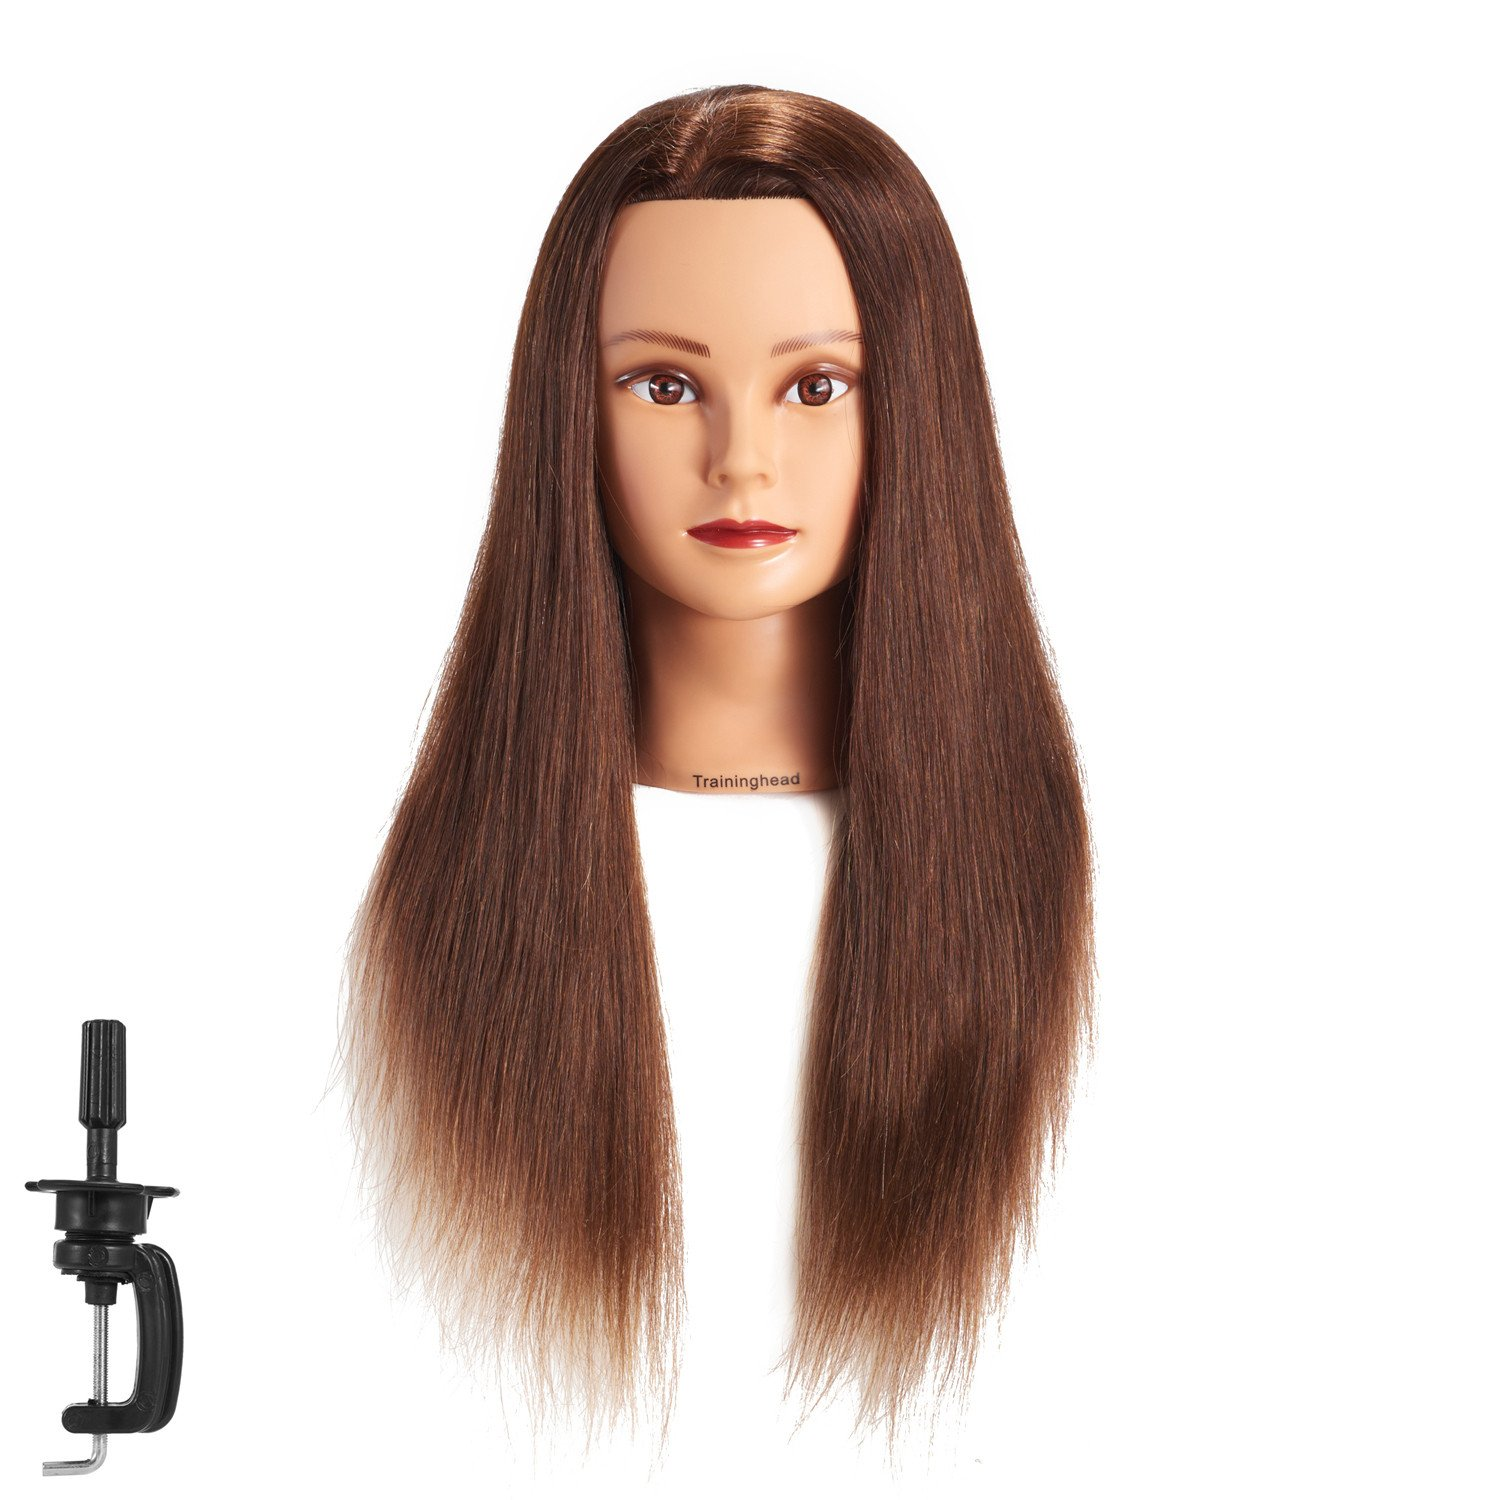 26-28 100% Human hair Mannequin head Training Head Cosmetology Manikin Head Doll Head with free Clamp (dark brown)